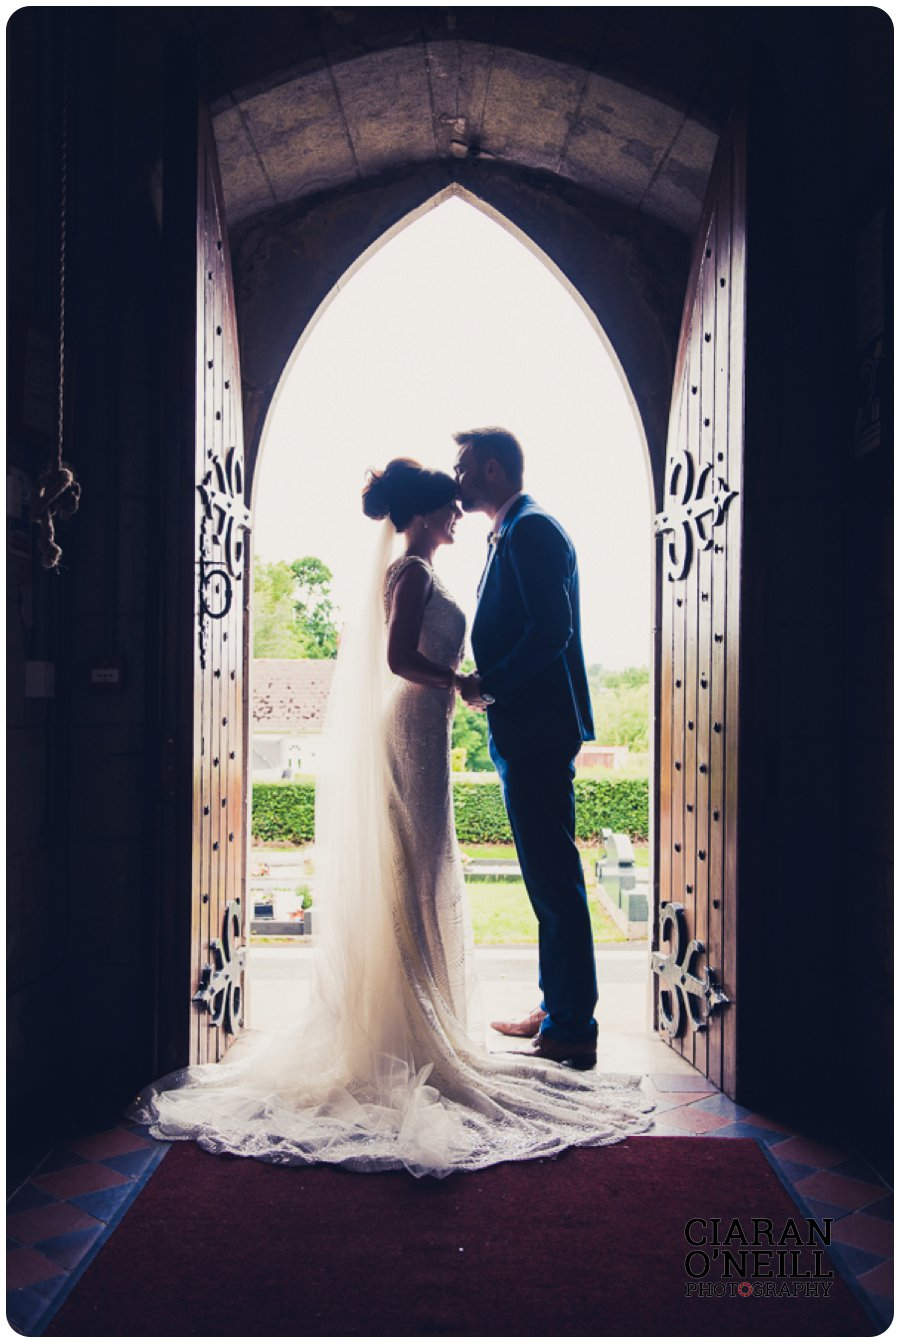 Emma & Adam's wedding at Cabra Castle by Ciaran O'Neill Photography 21